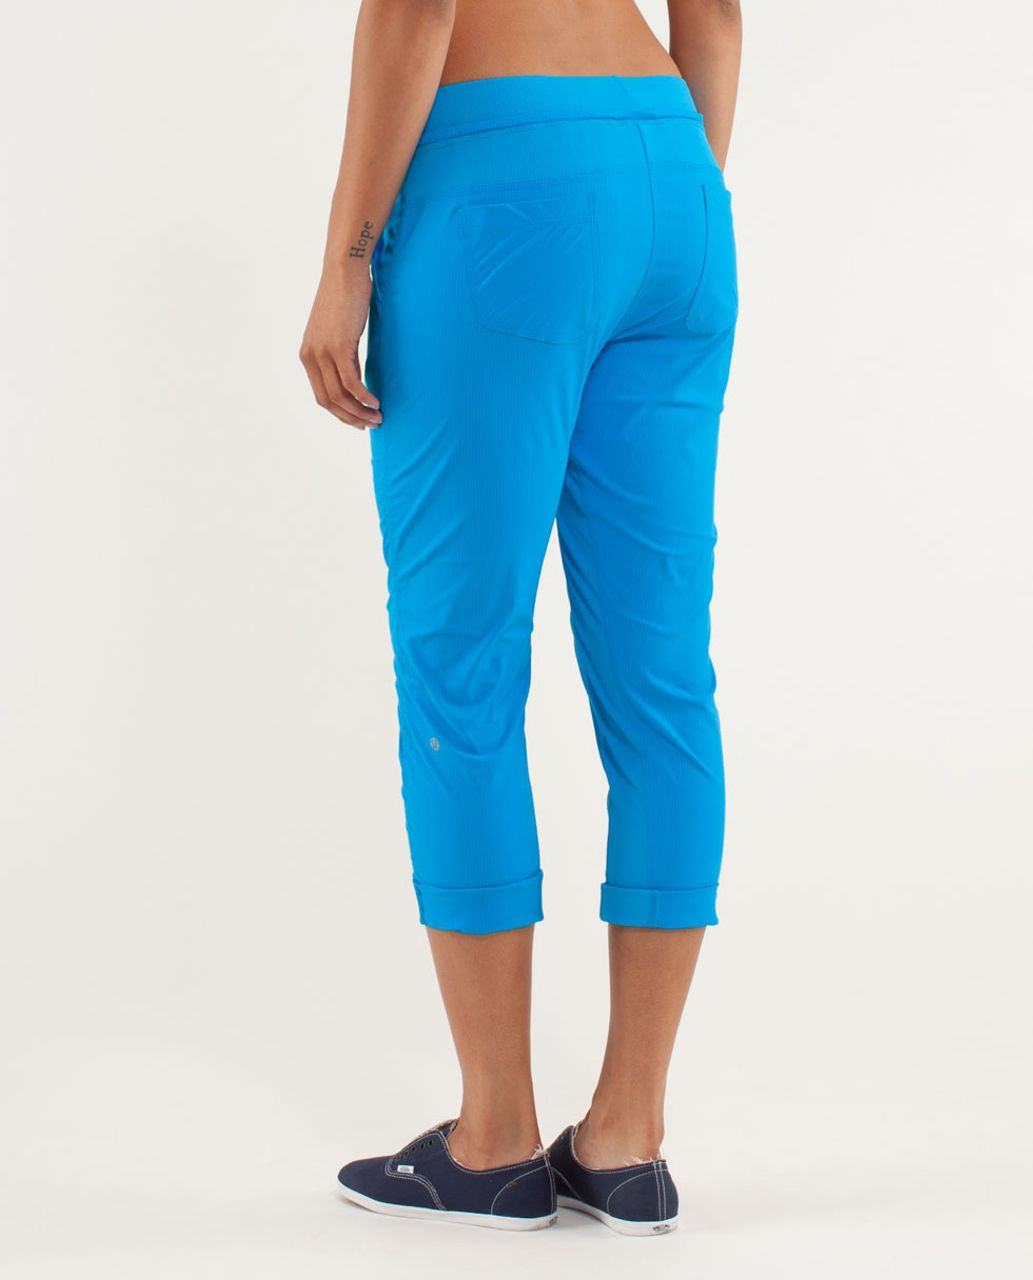 Lululemon Street To Studio Crop *No Liner - Beach Blanket Blue